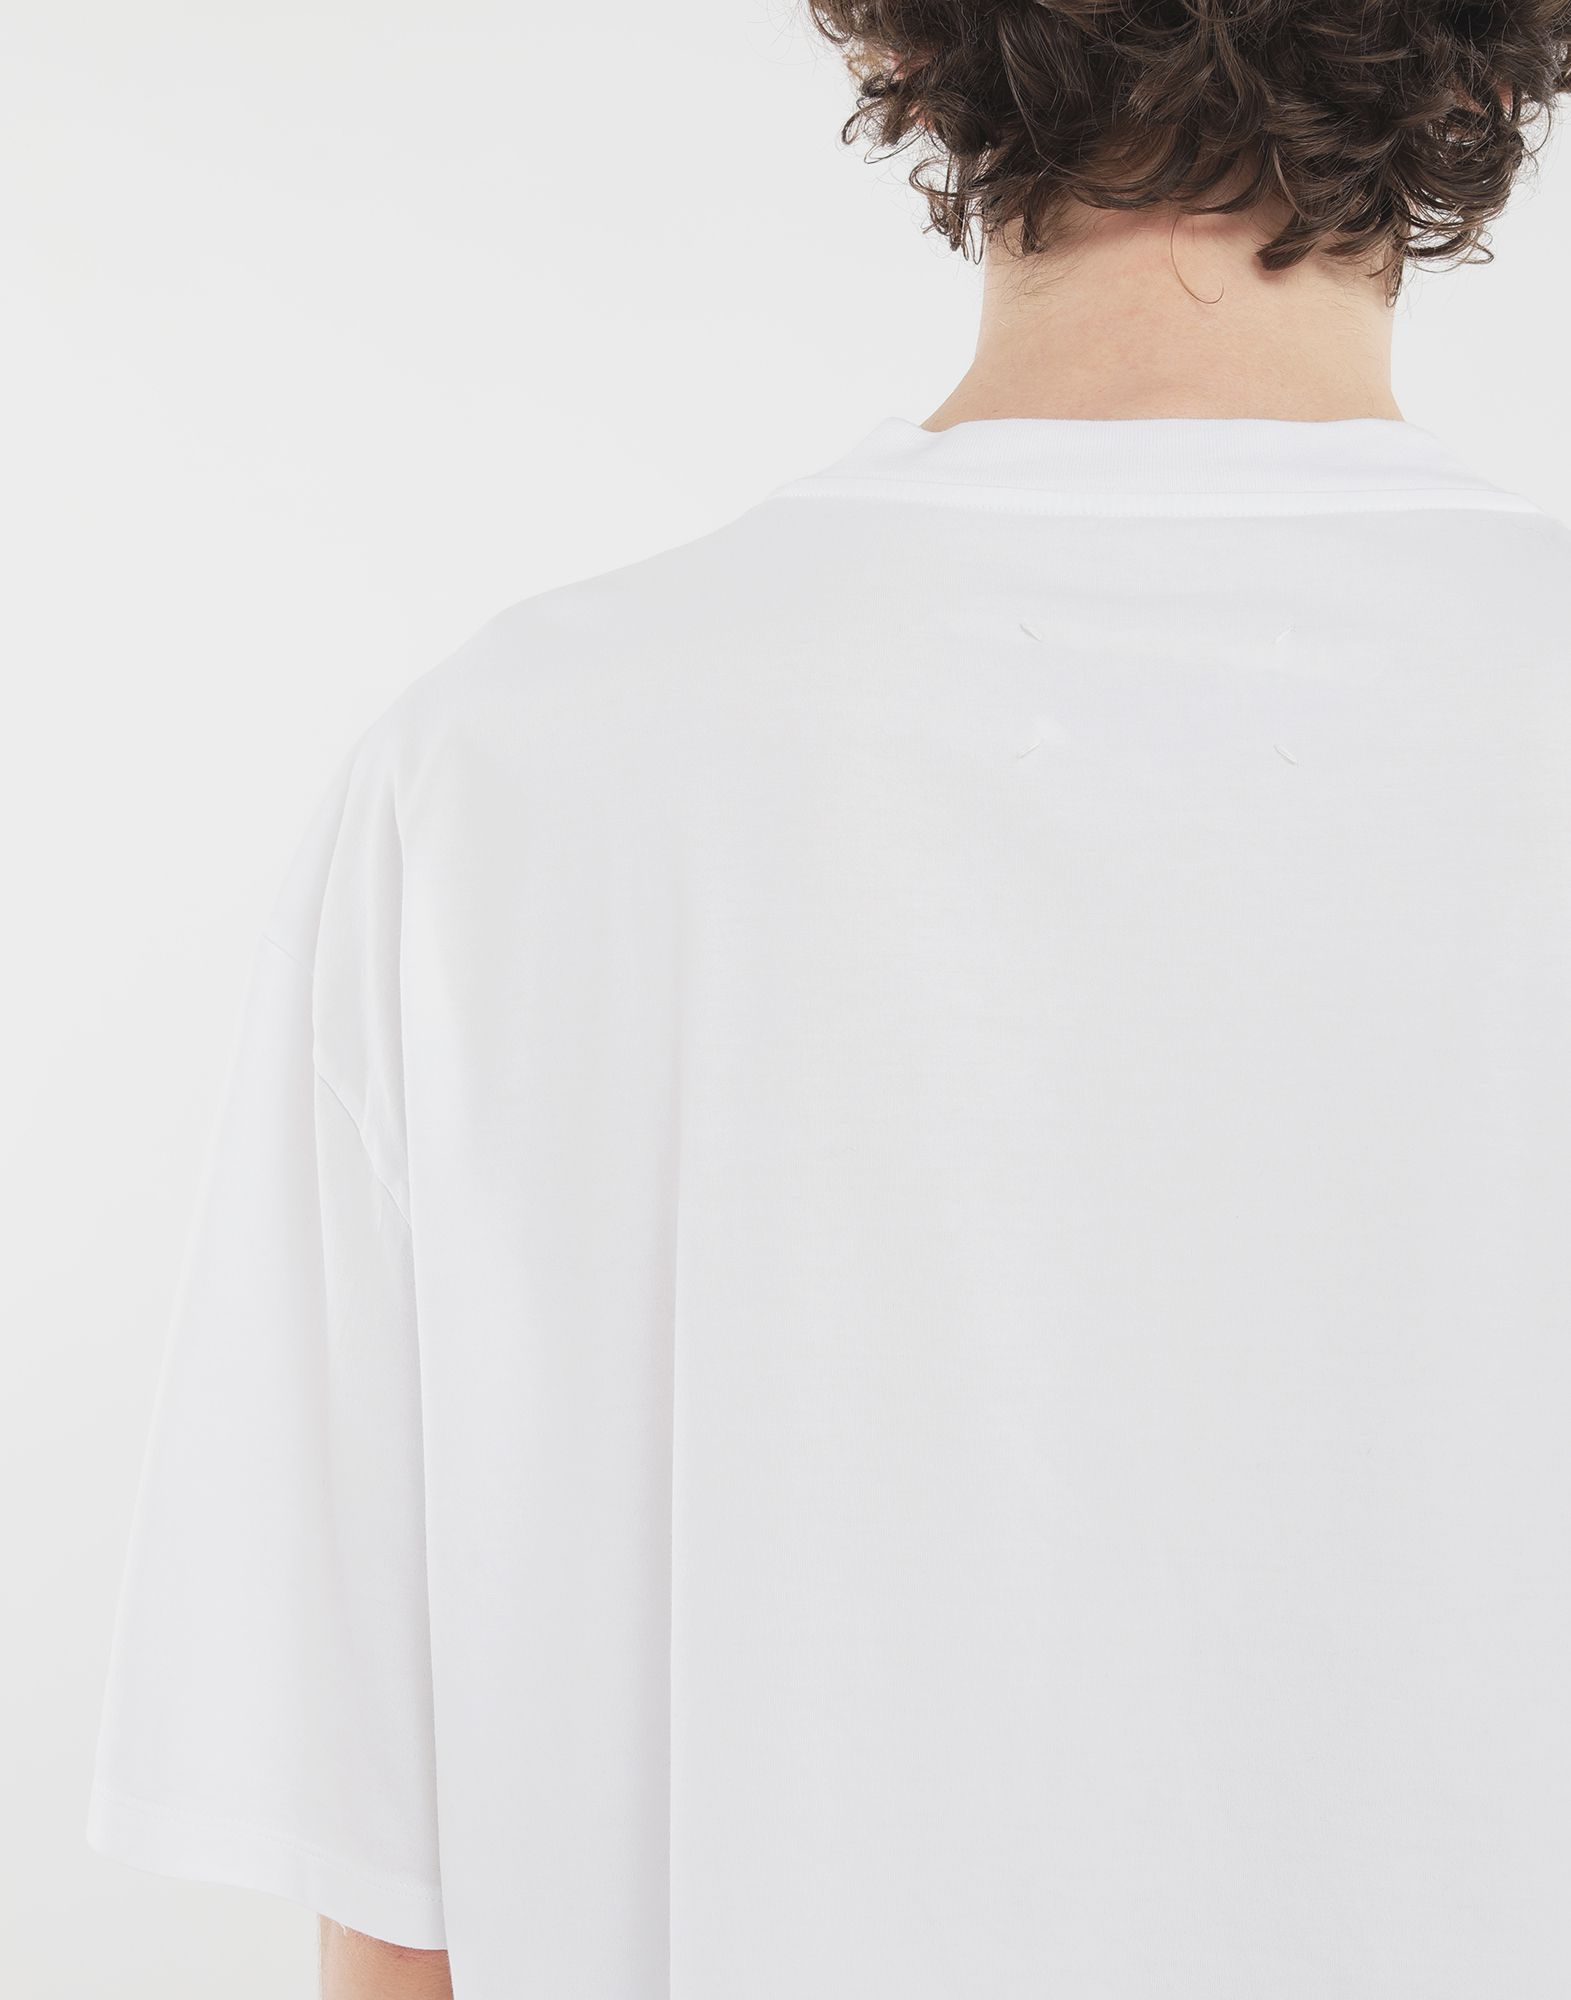 MAISON MARGIELA 'Défilé A/W' destroyed T-shirt Short sleeve t-shirt Man b